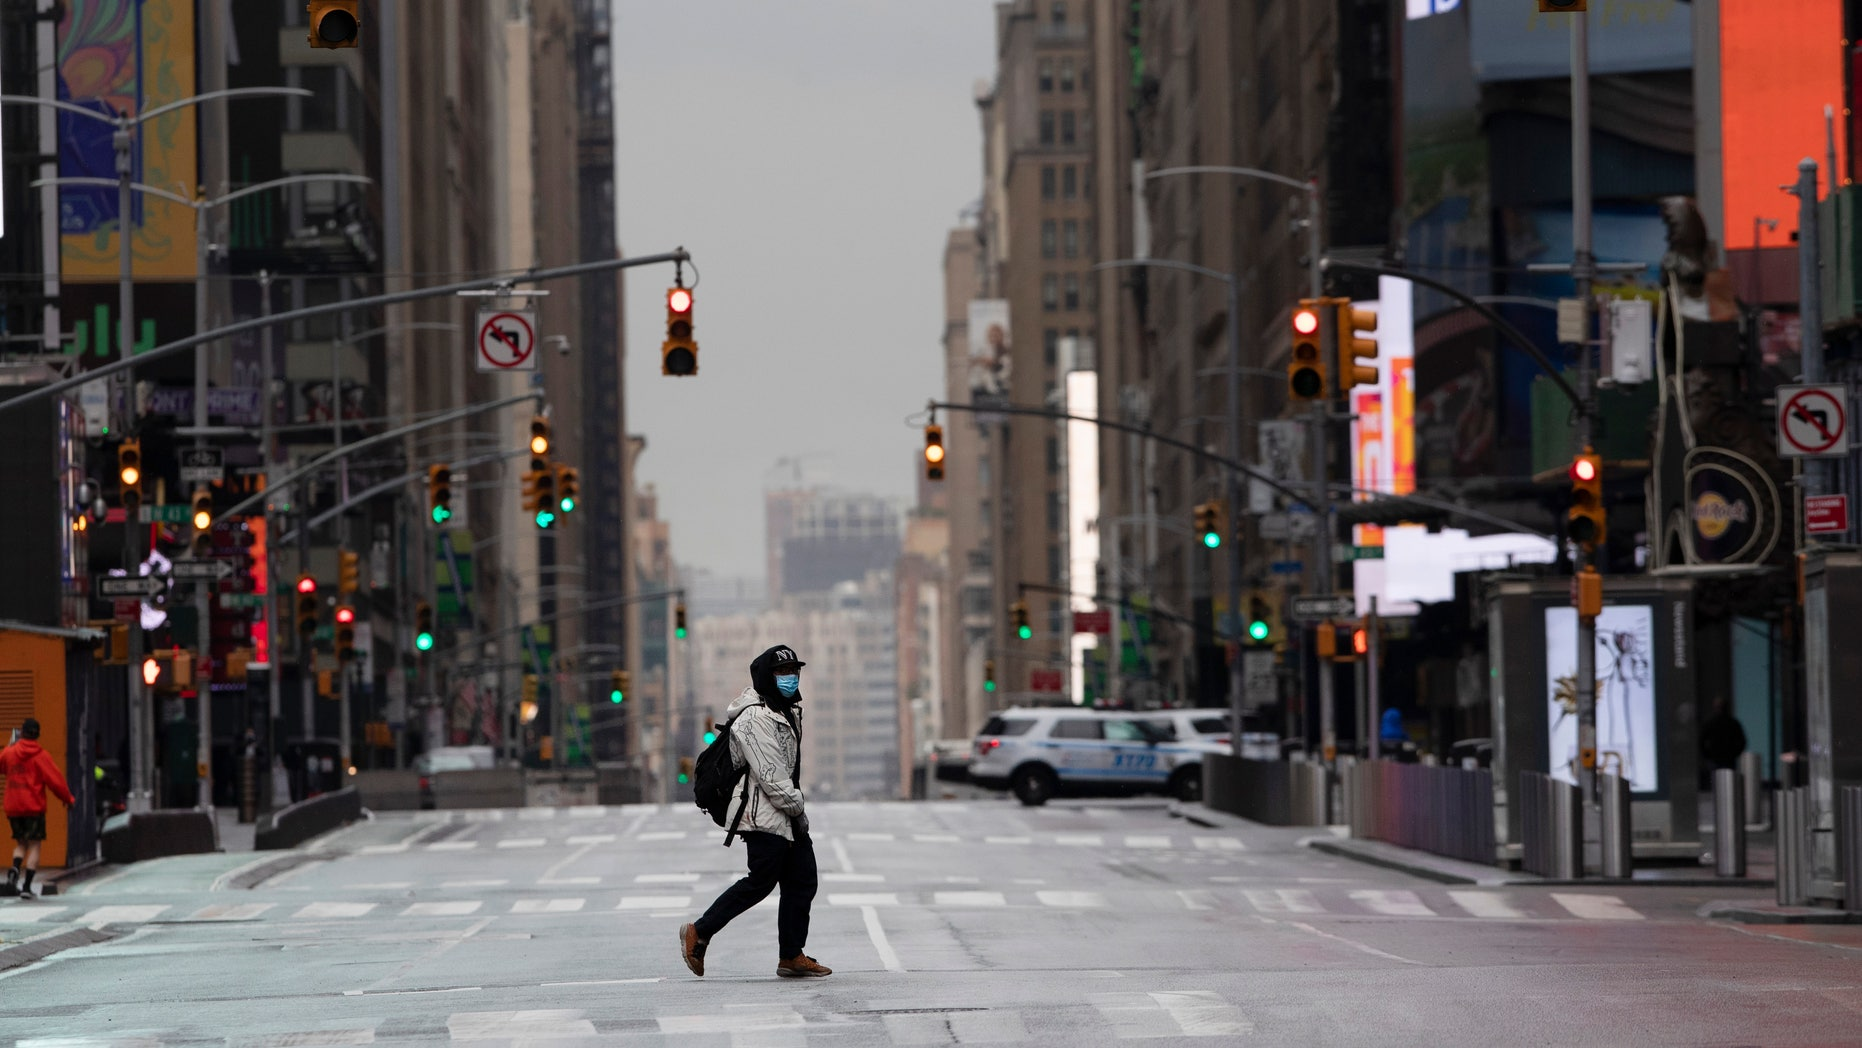 A man wearing a mask crosses the street in a quiet Times Square, Thursday, April 9, 2020, during the coronavirus epidemic. (AP Photo/Mark Lennihan)